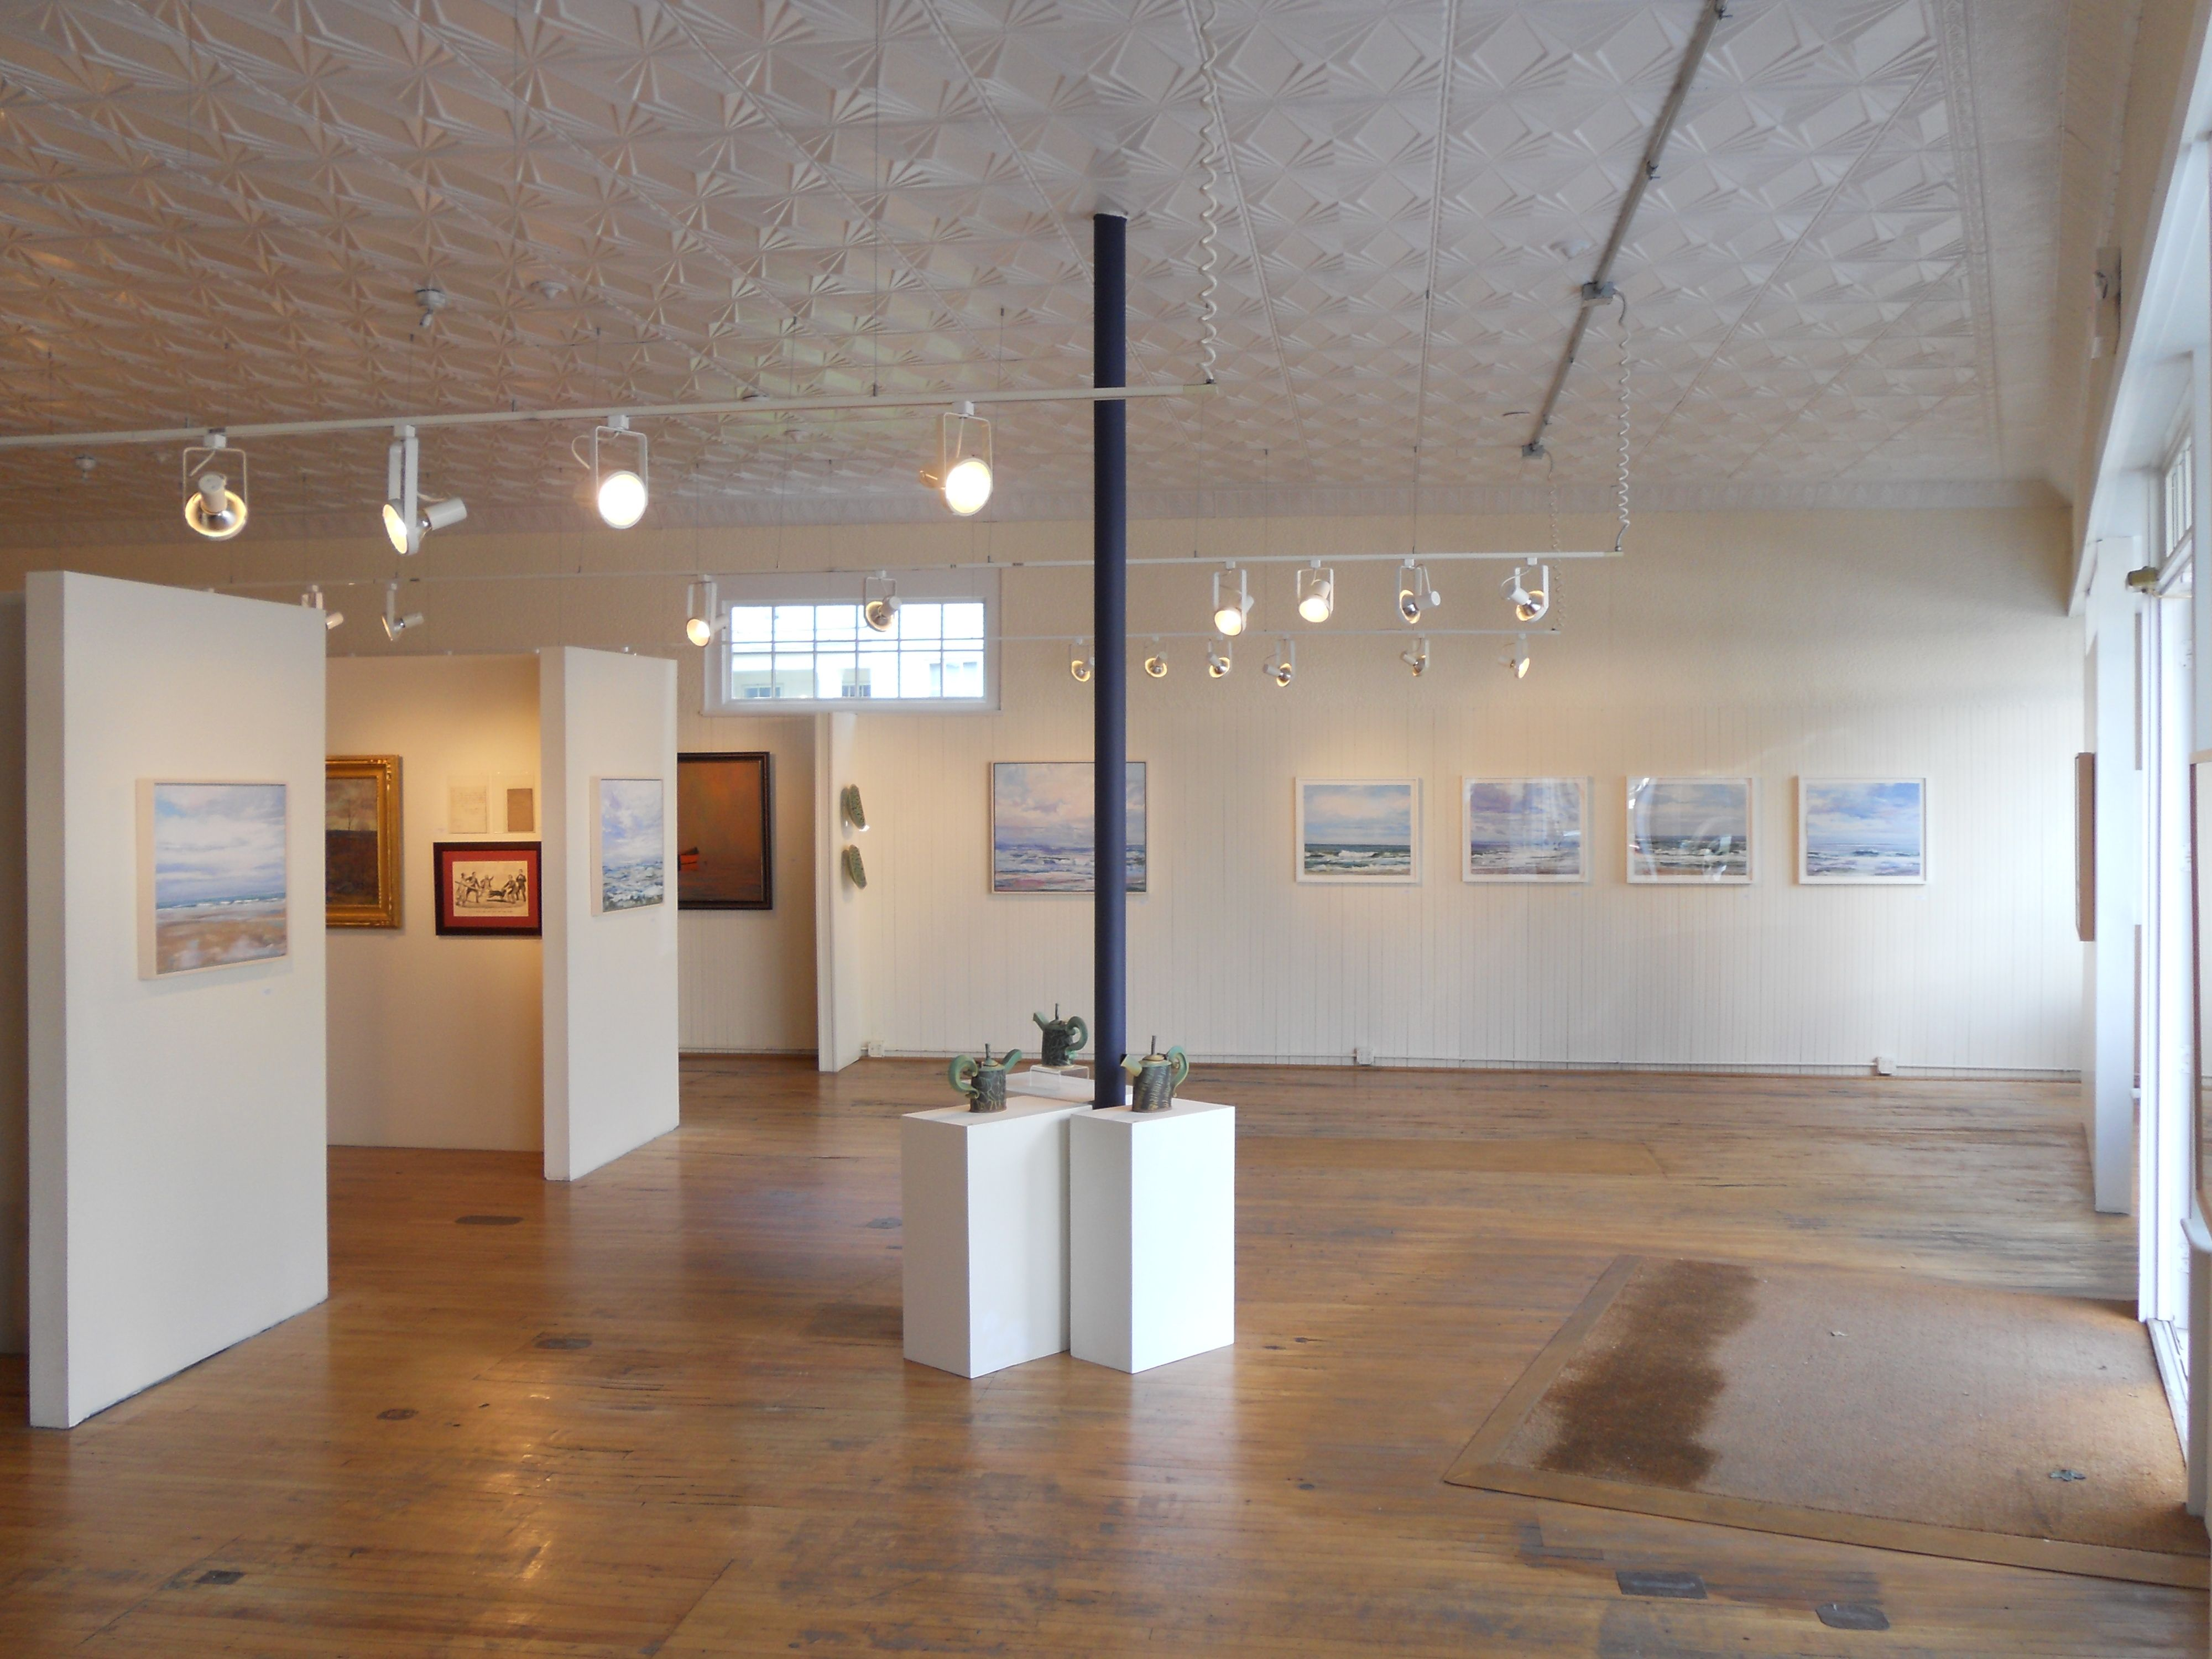 Essex Connecticut The Best Small Town In America Small Town America Contemporary Art Gallery Essex